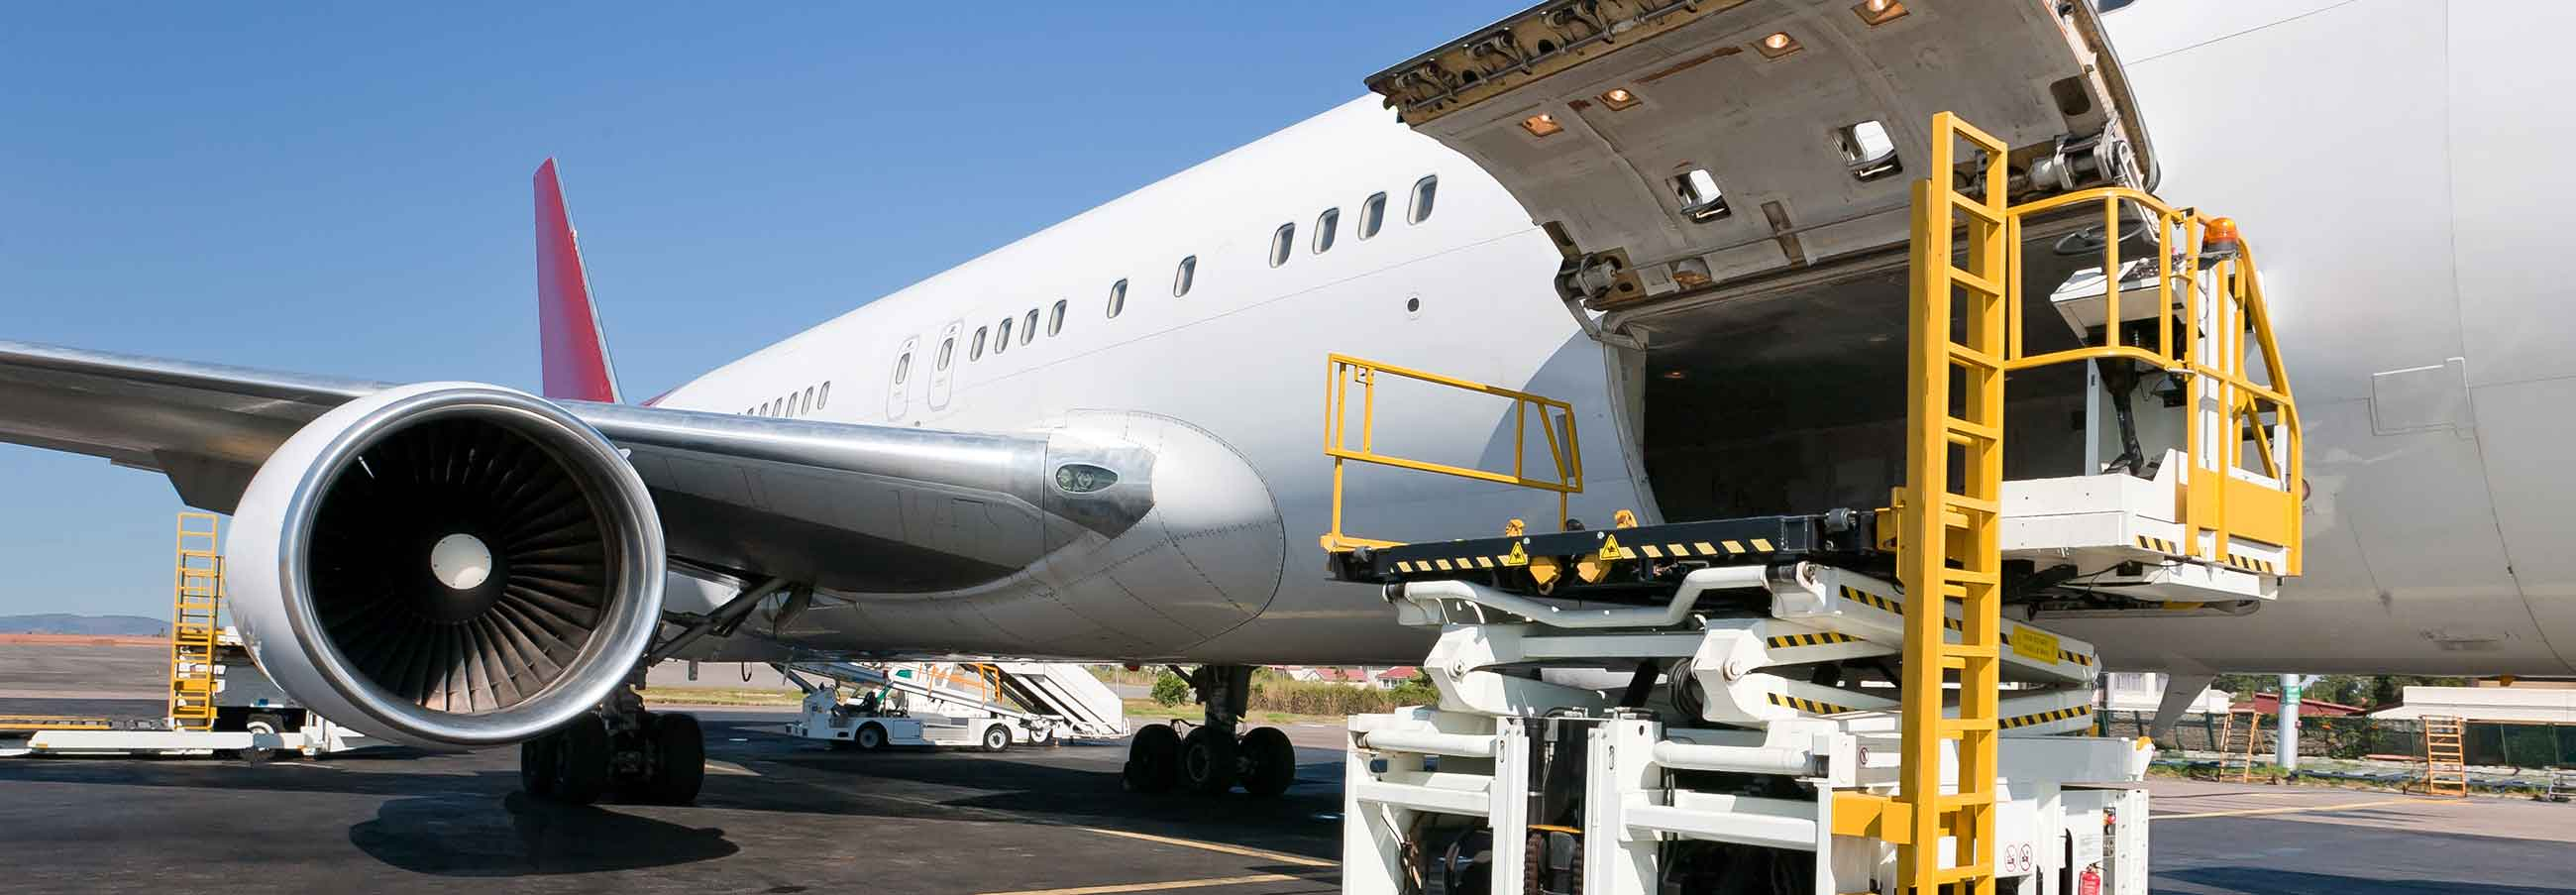 cargo plane being loaded with air freight packages